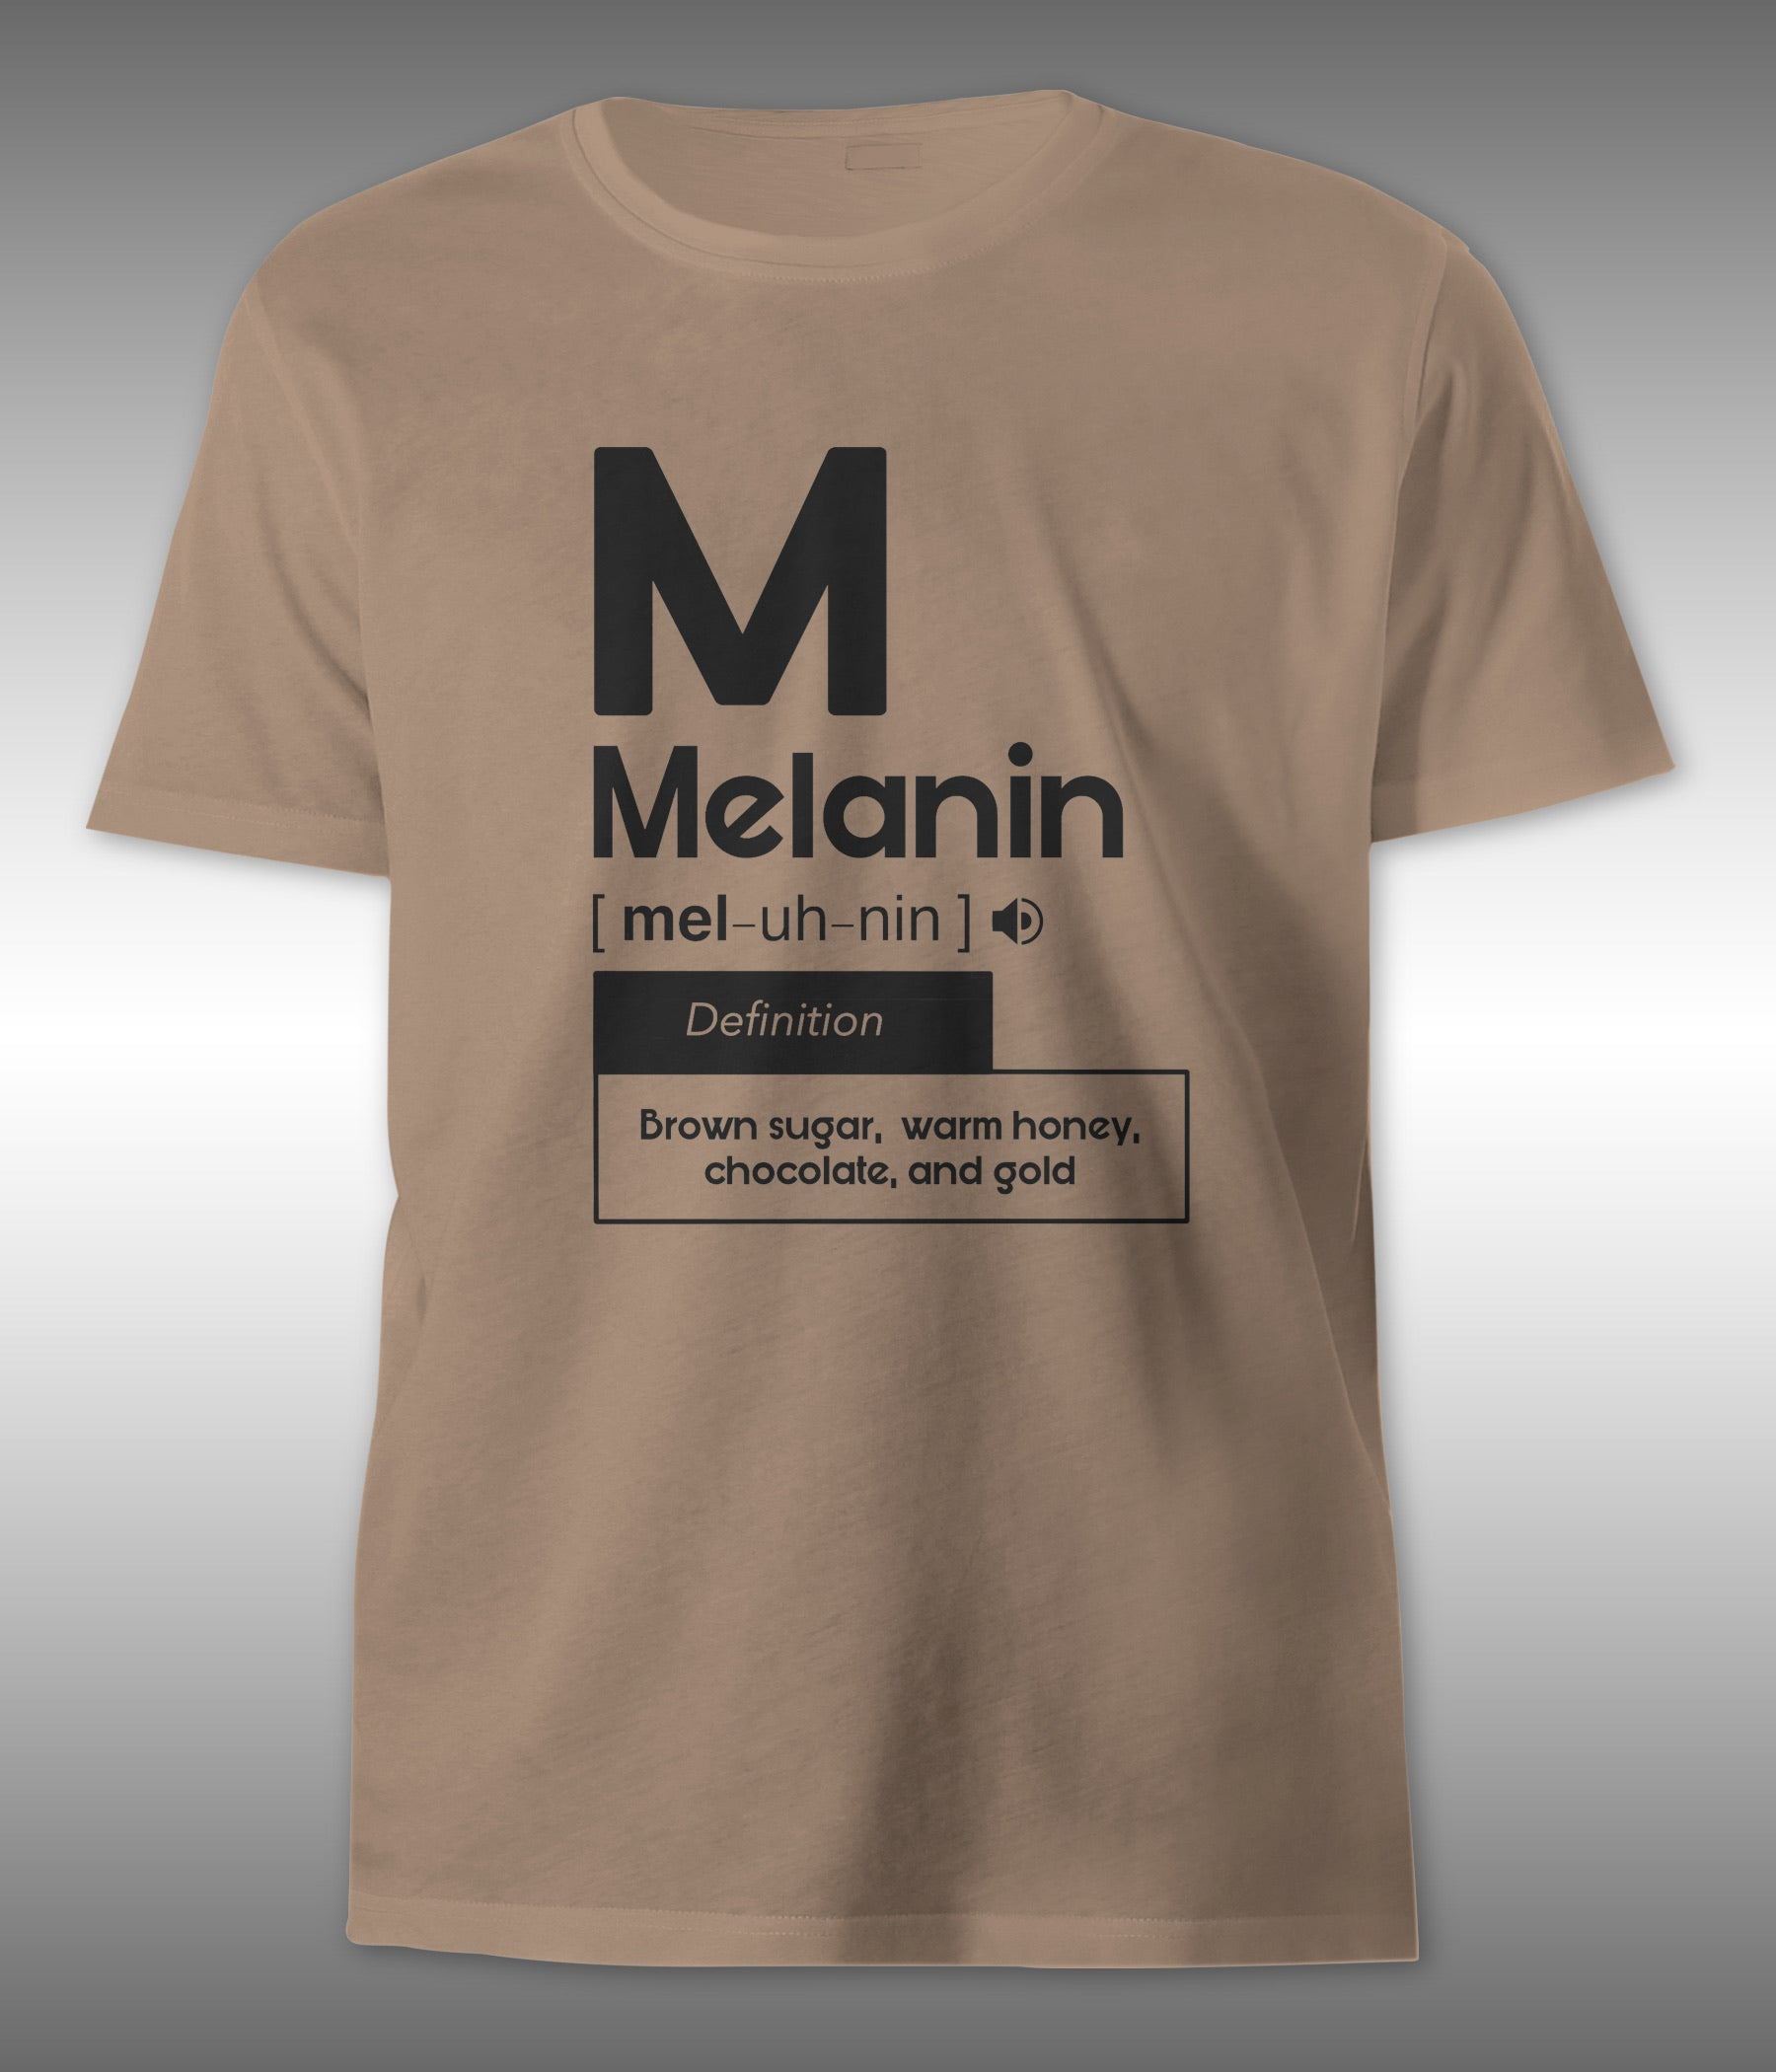 'M is for Melanin' Tee